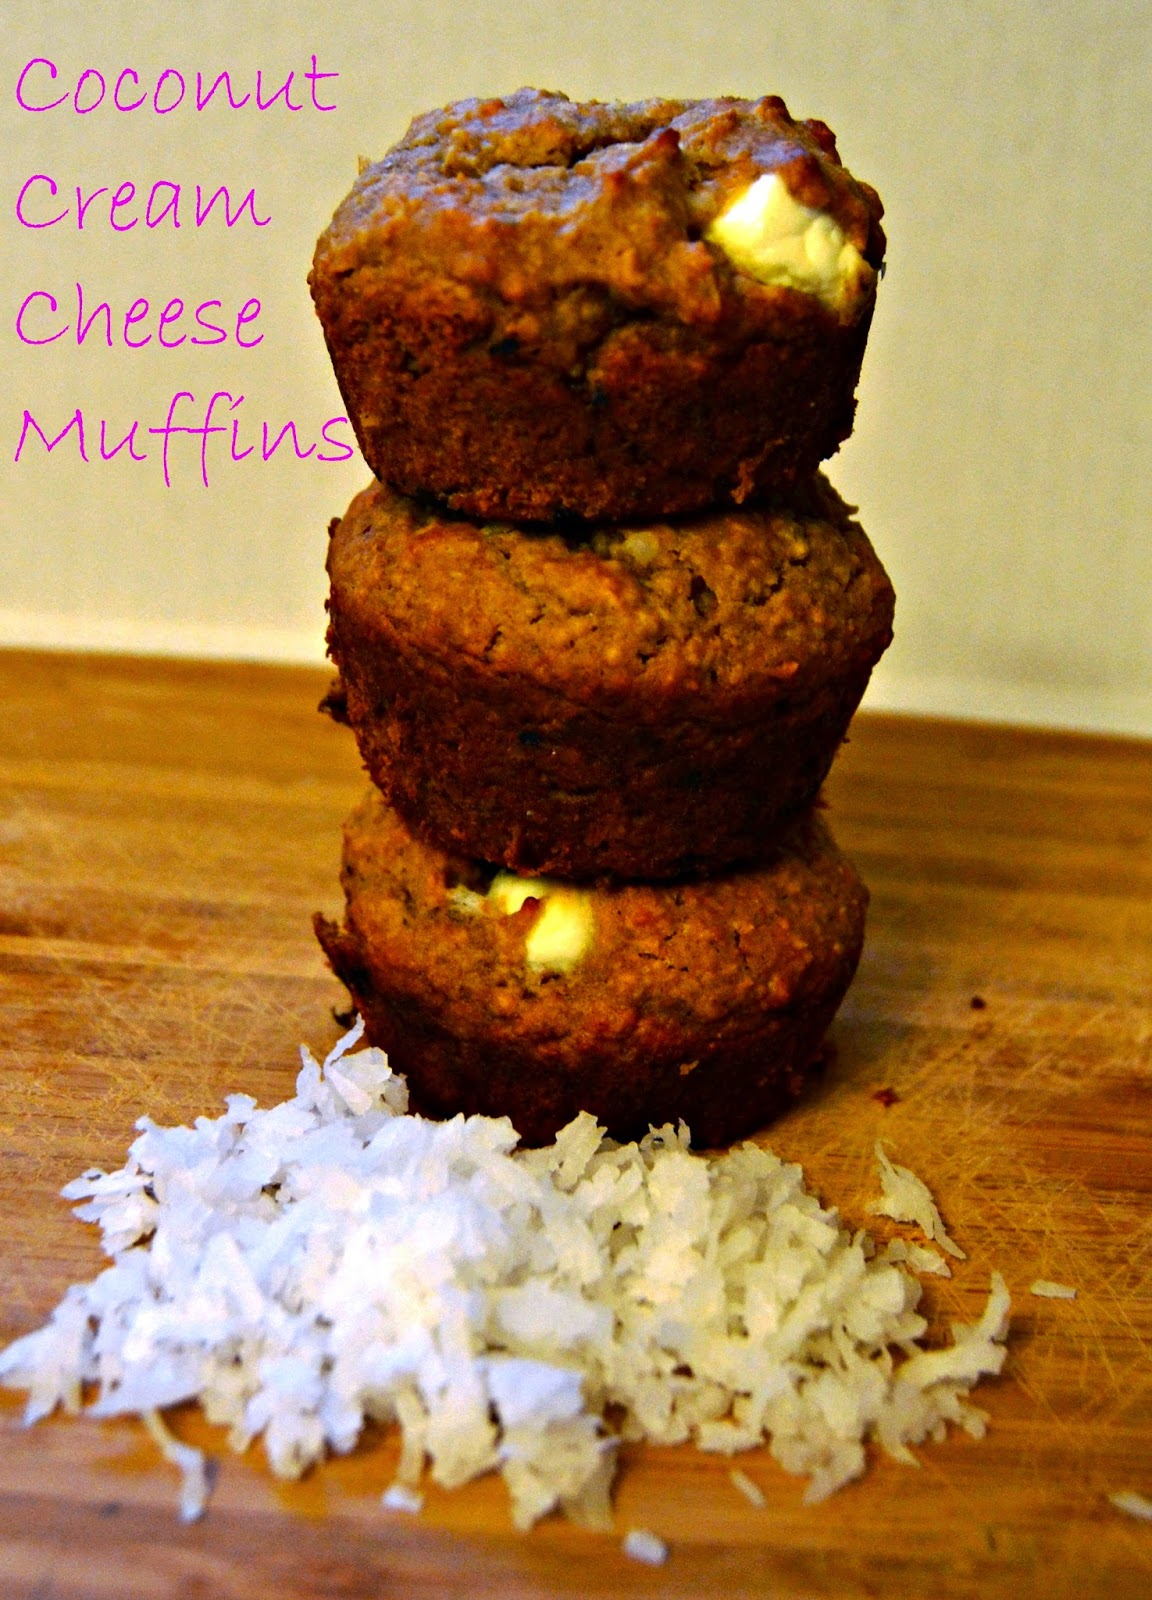 Coconut Cream Cheese Muffins